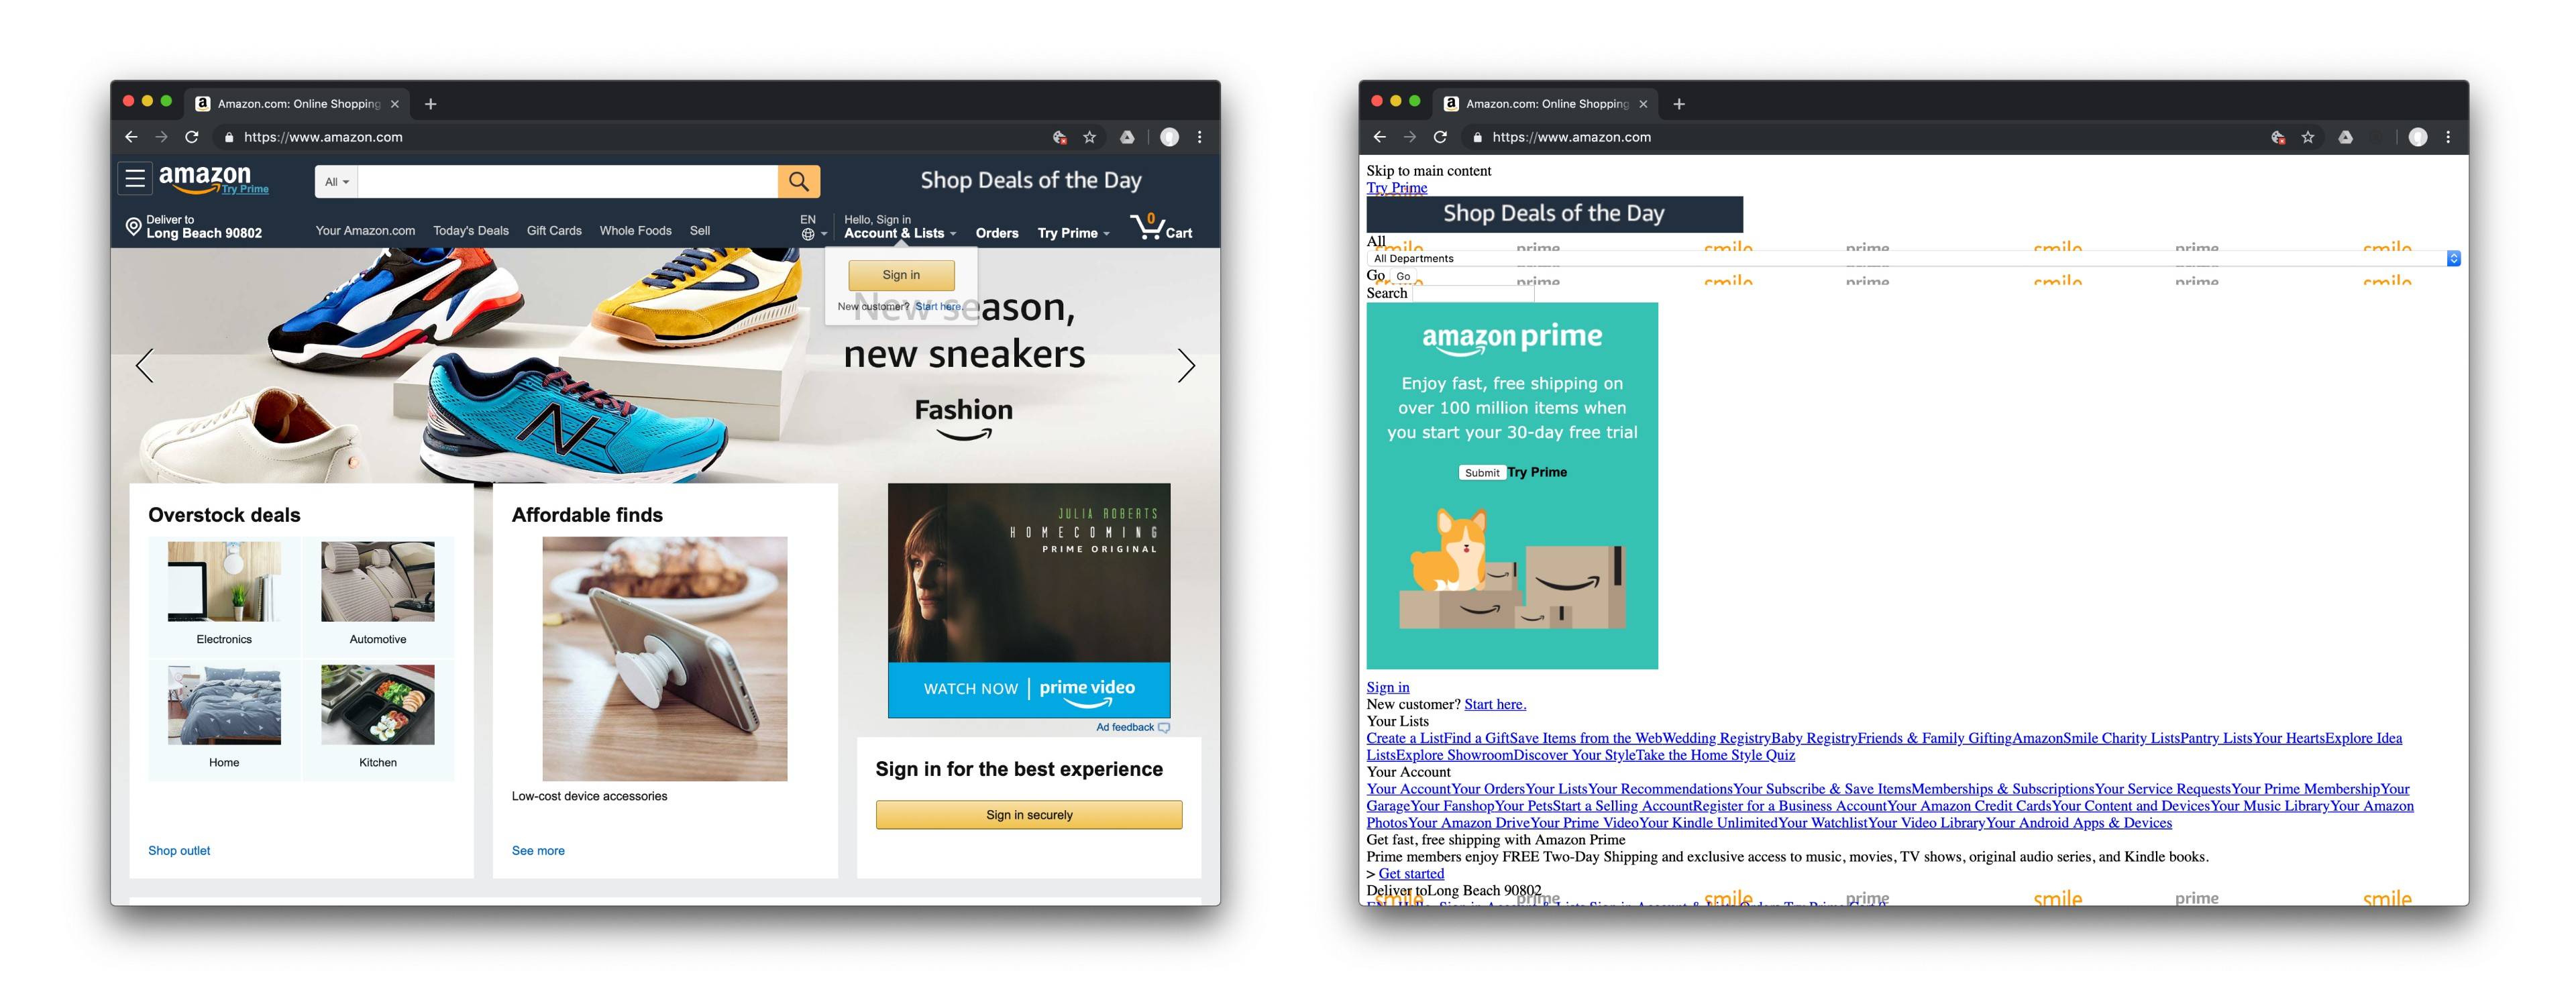 The Amazon.com homepage with and without CSS